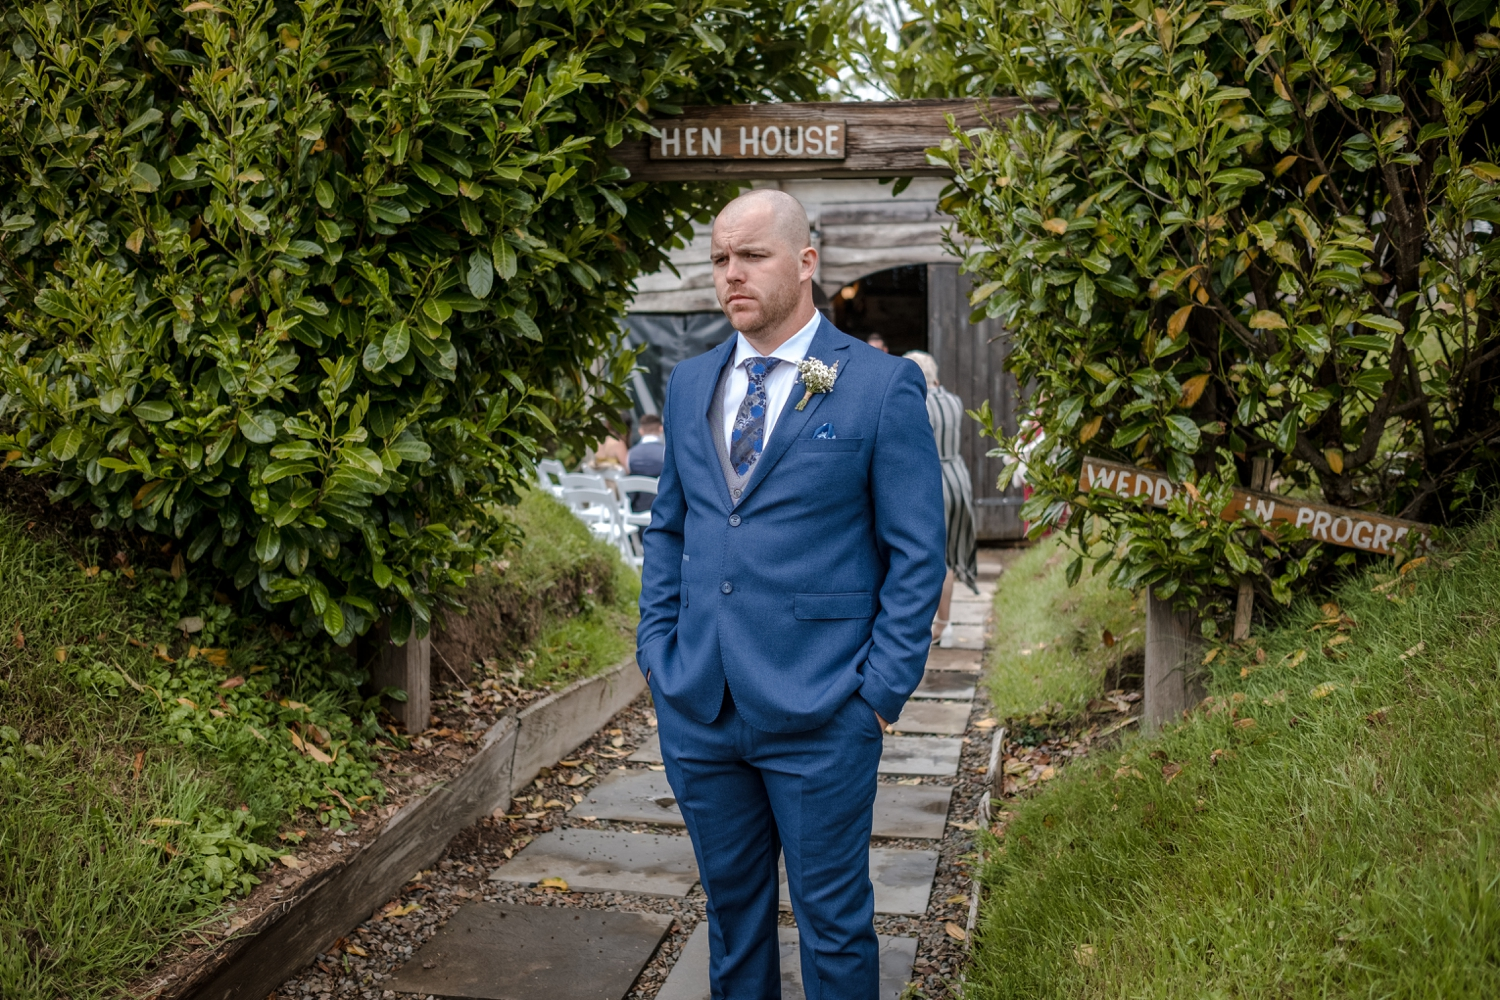 Groom waiting outside the hen house at Woodhouse Barn